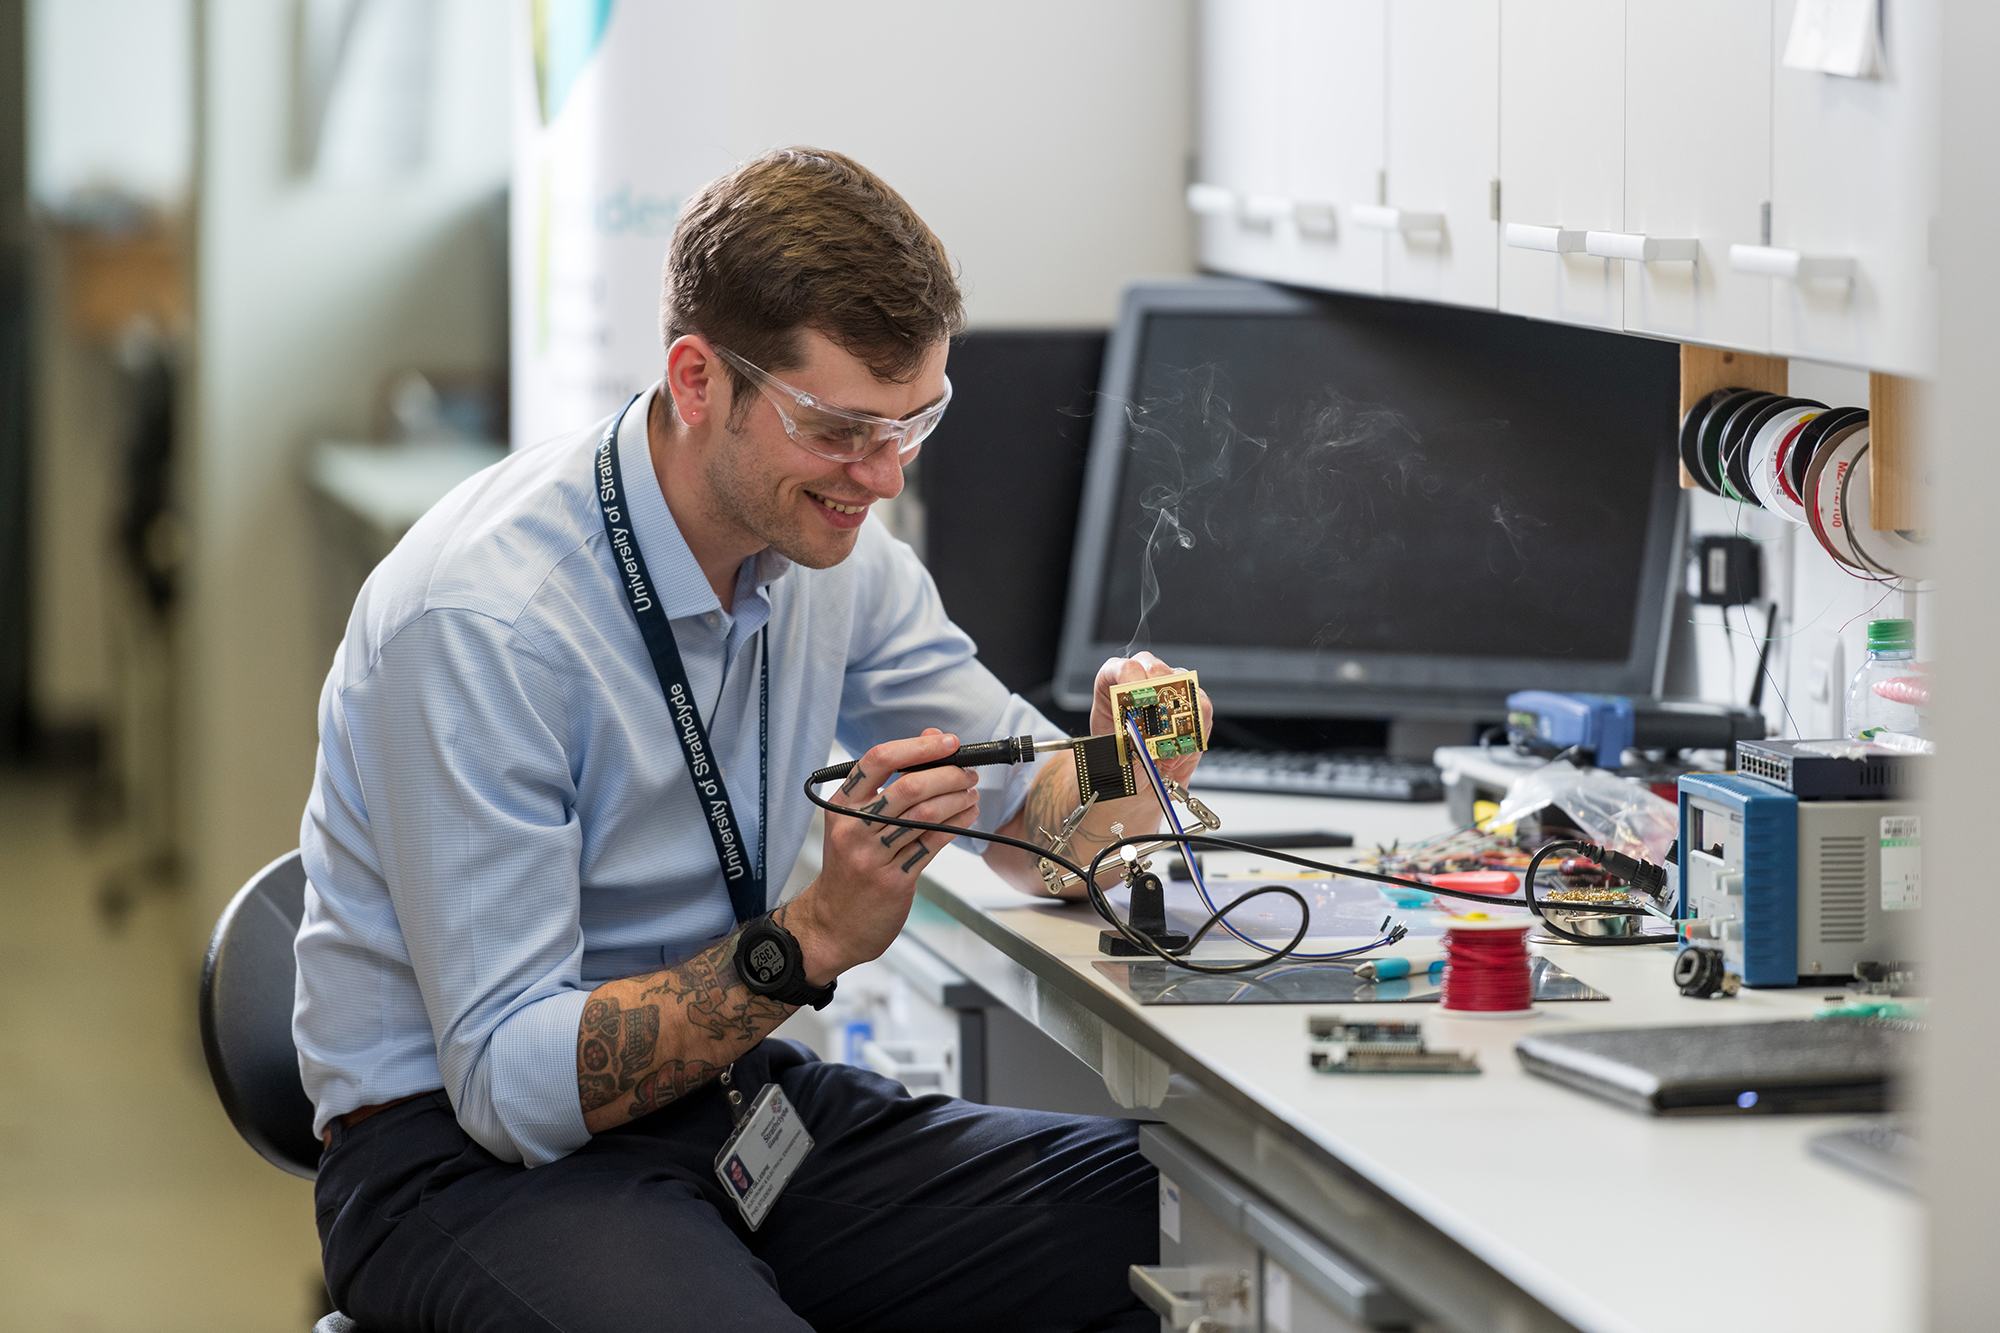 Young male engineer soldering electronic equipment